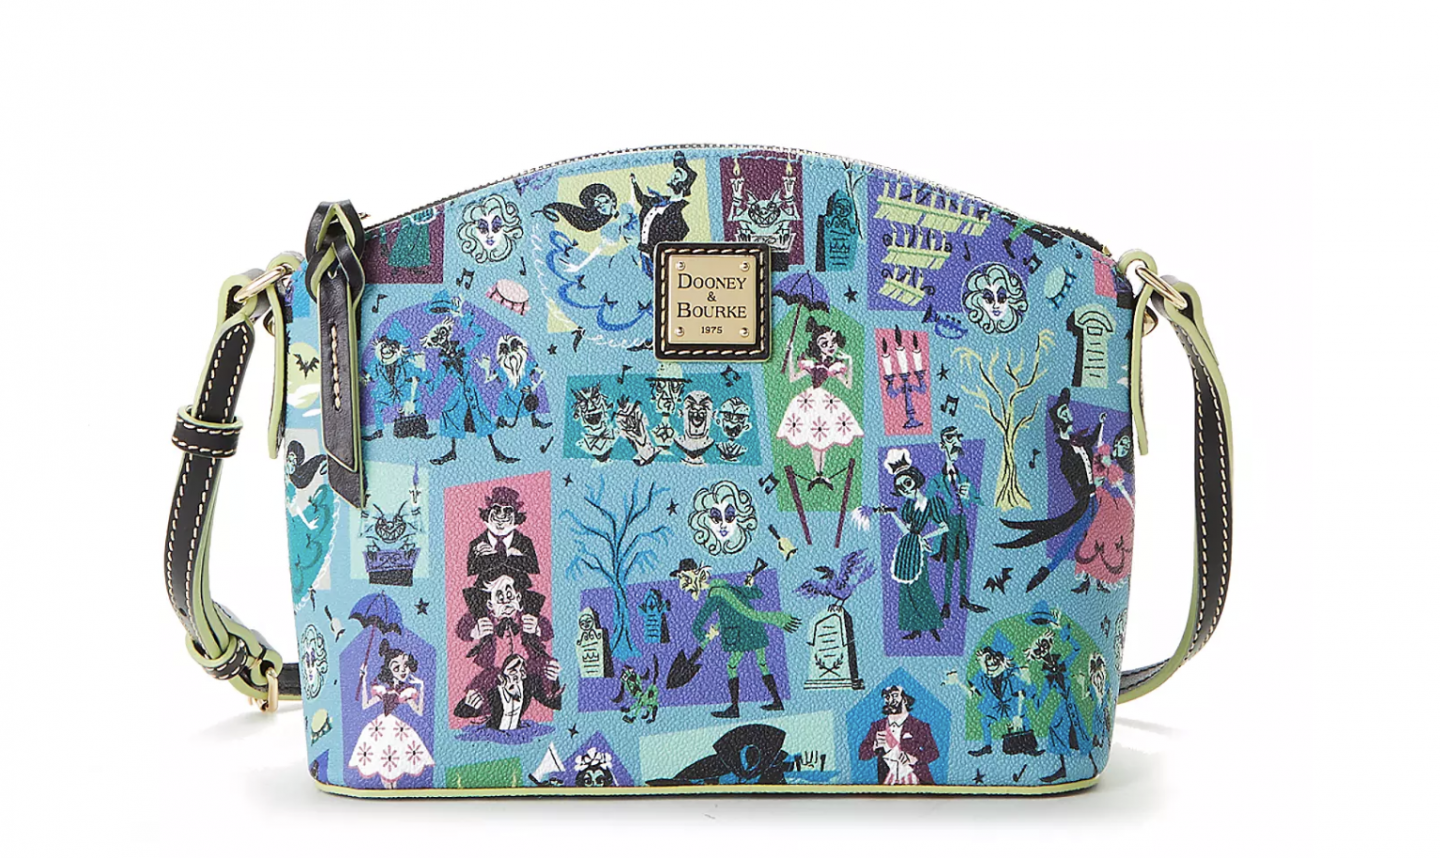 Haunted Mansion Dooney and Bourke 2020 Bag